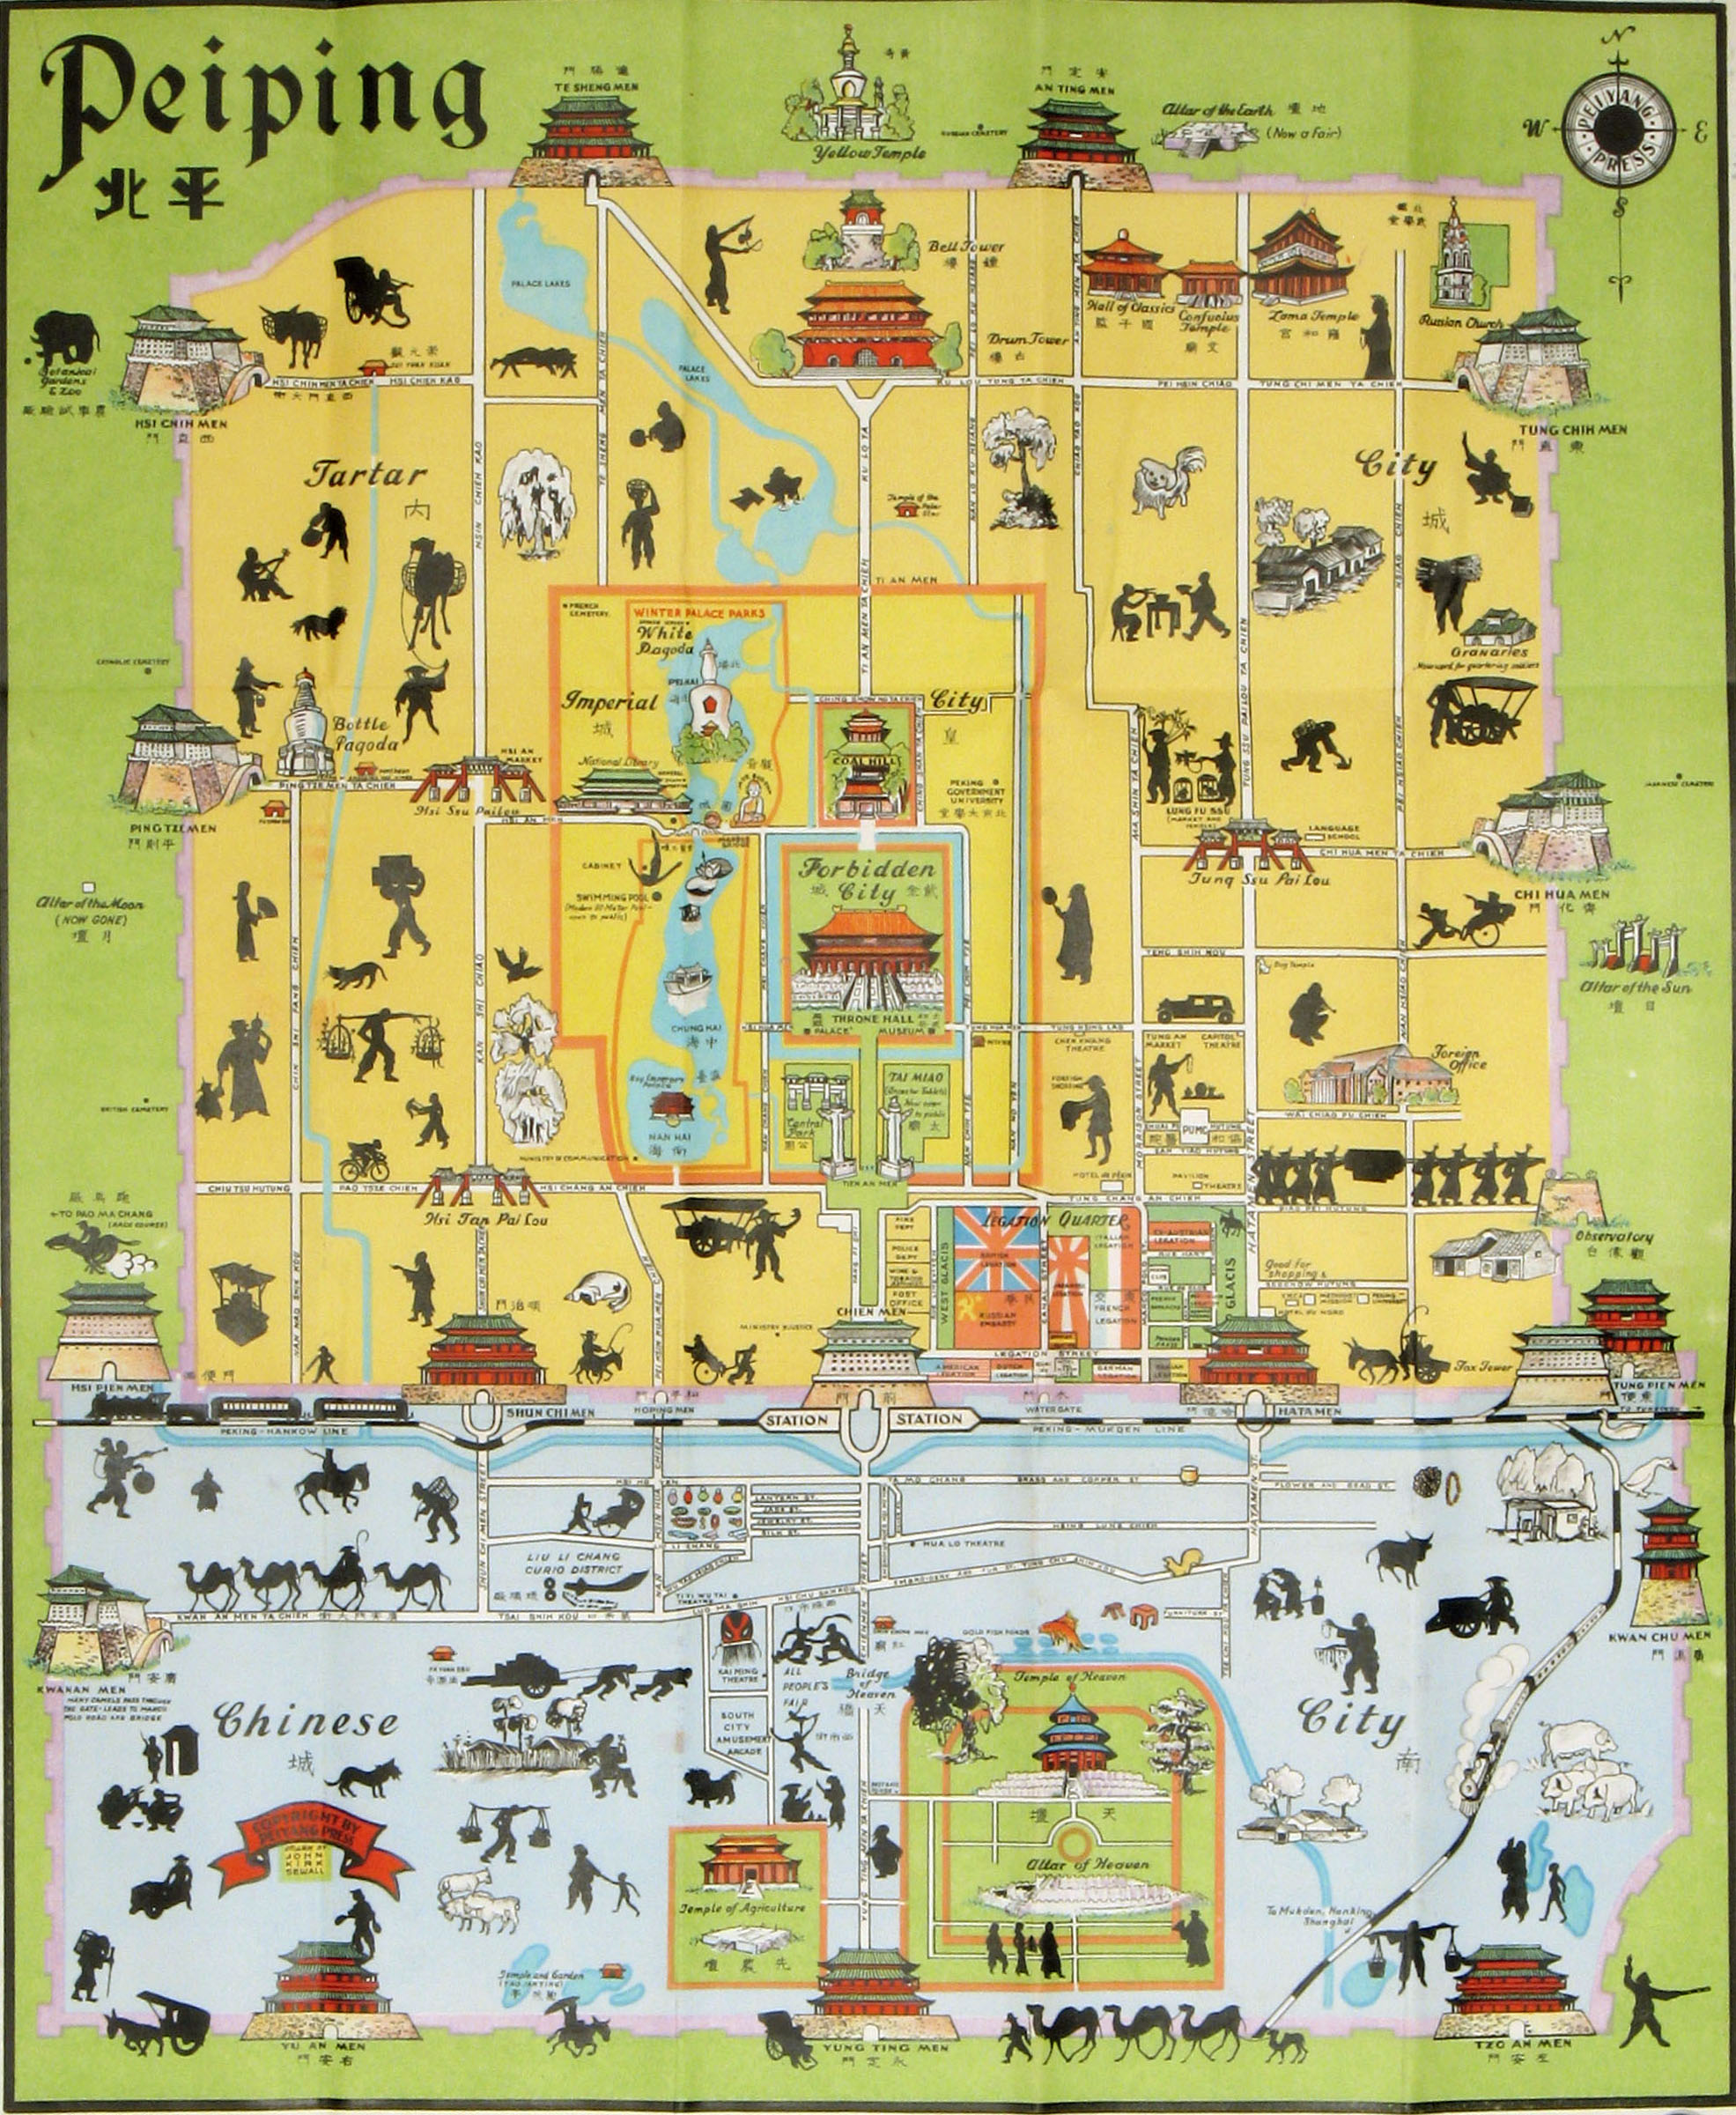 J. K. Sewall, A Pictorial Map of Peiping in full colours, c. 1928-1933.